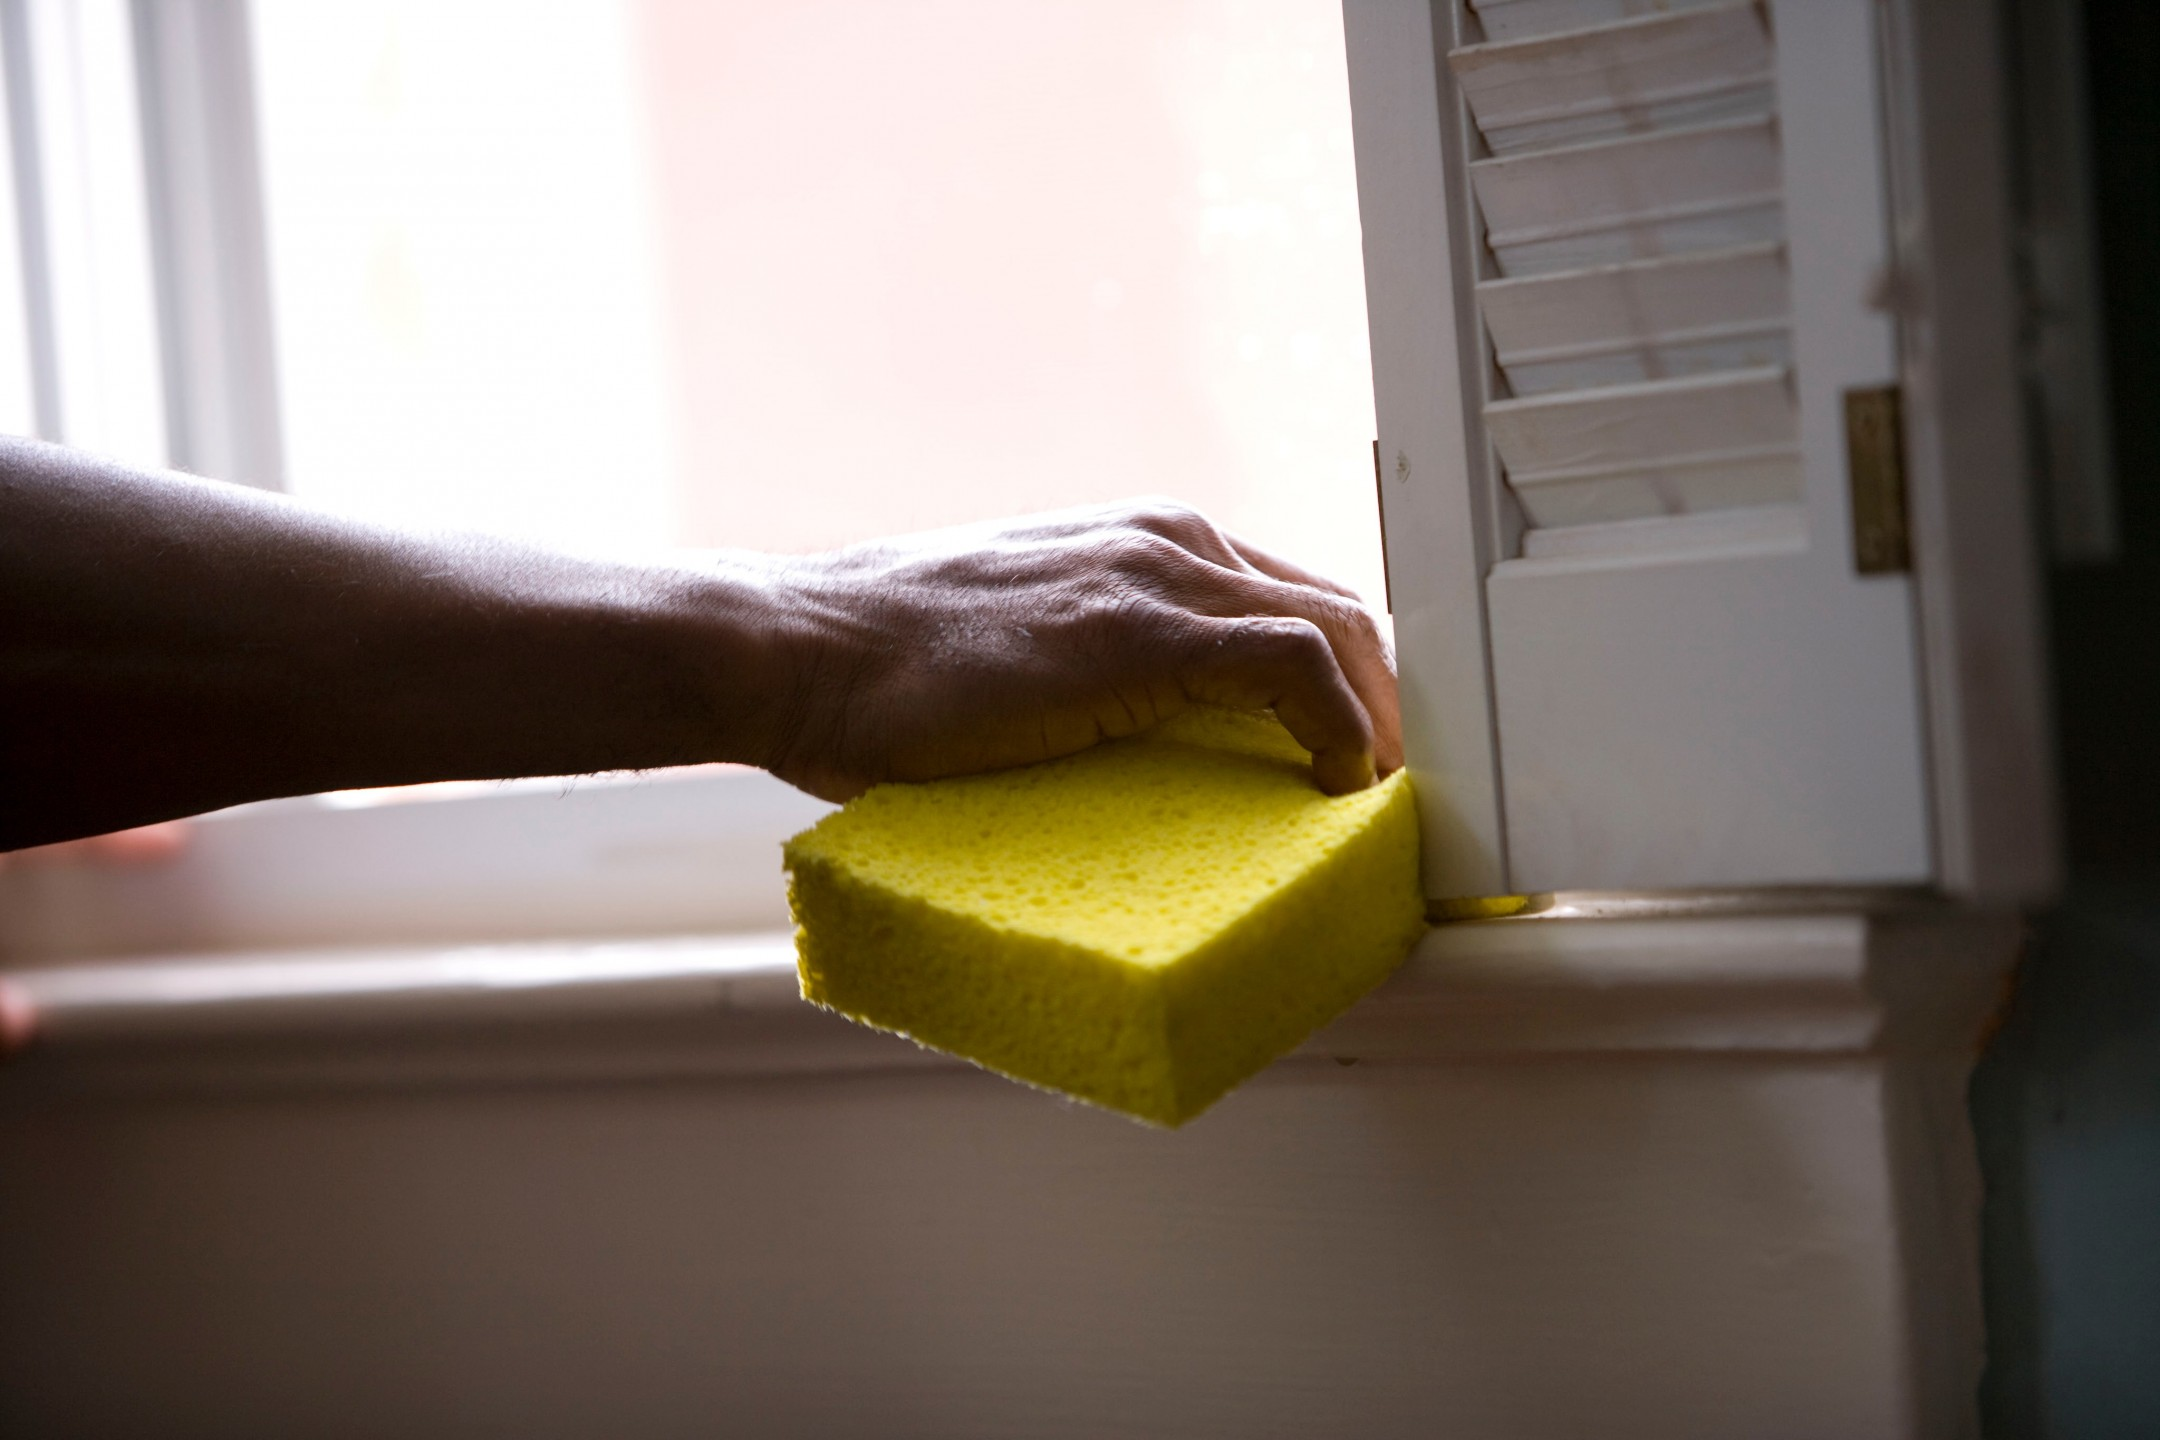 squarerooms cdc sponge arm hand cleaning window